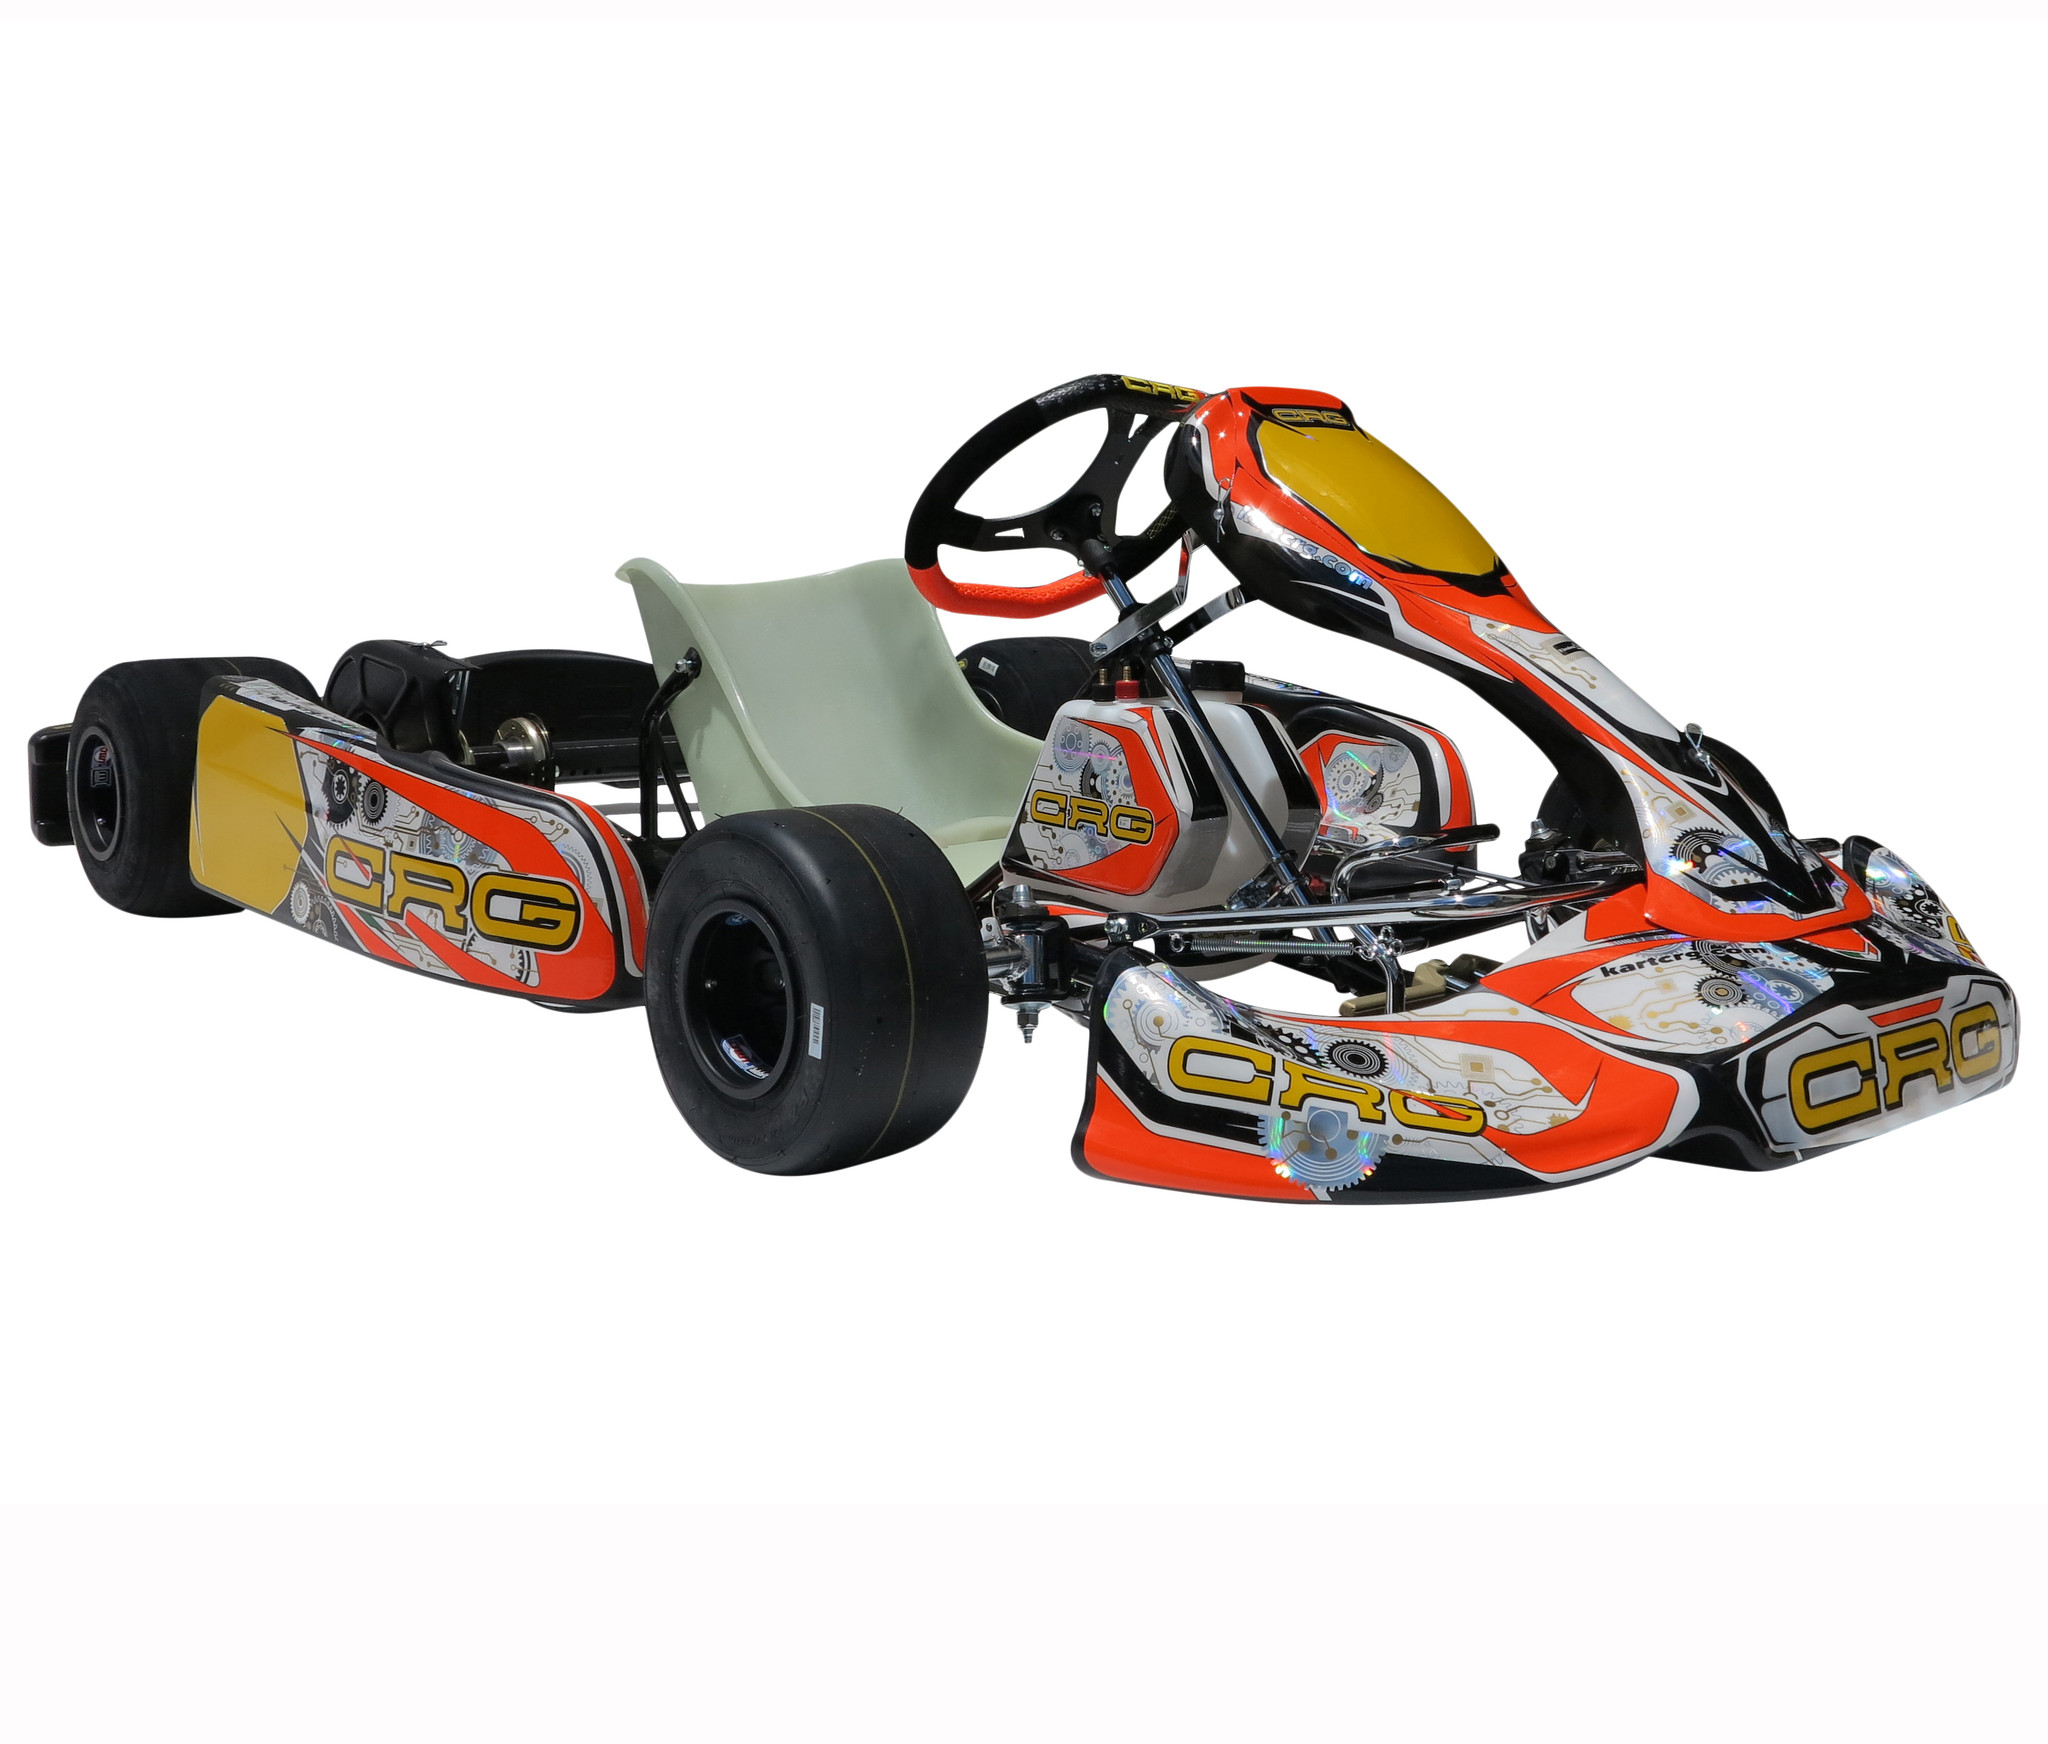 Buy & Sell karts, engines and spares with TKC - Rolling Chassis